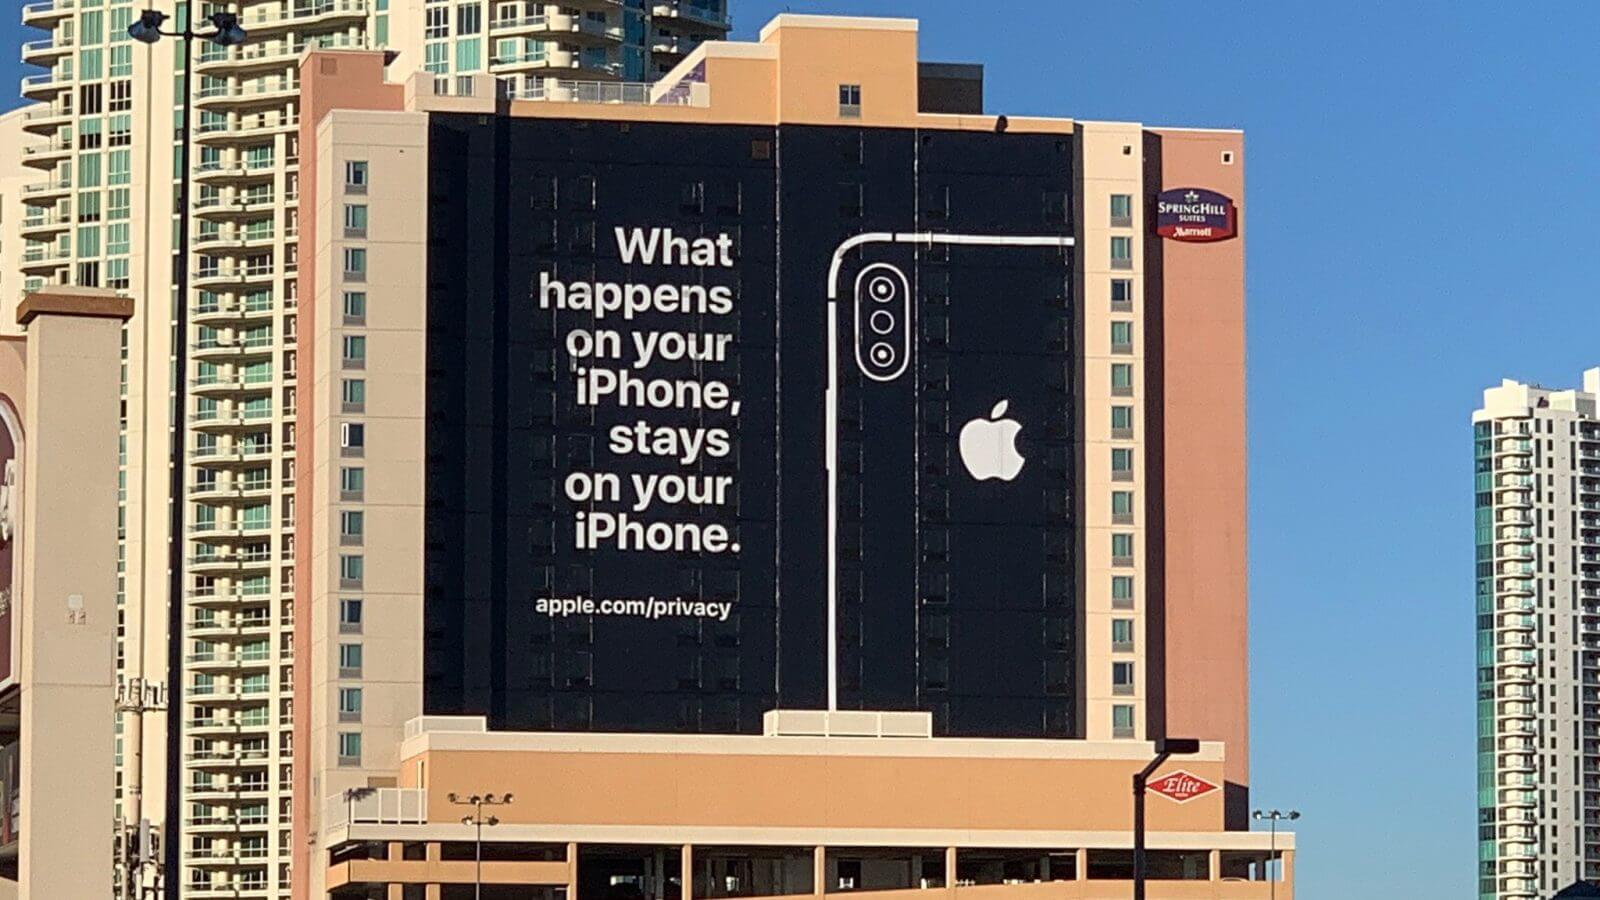 Apple Billboard on Privacy Outside CES